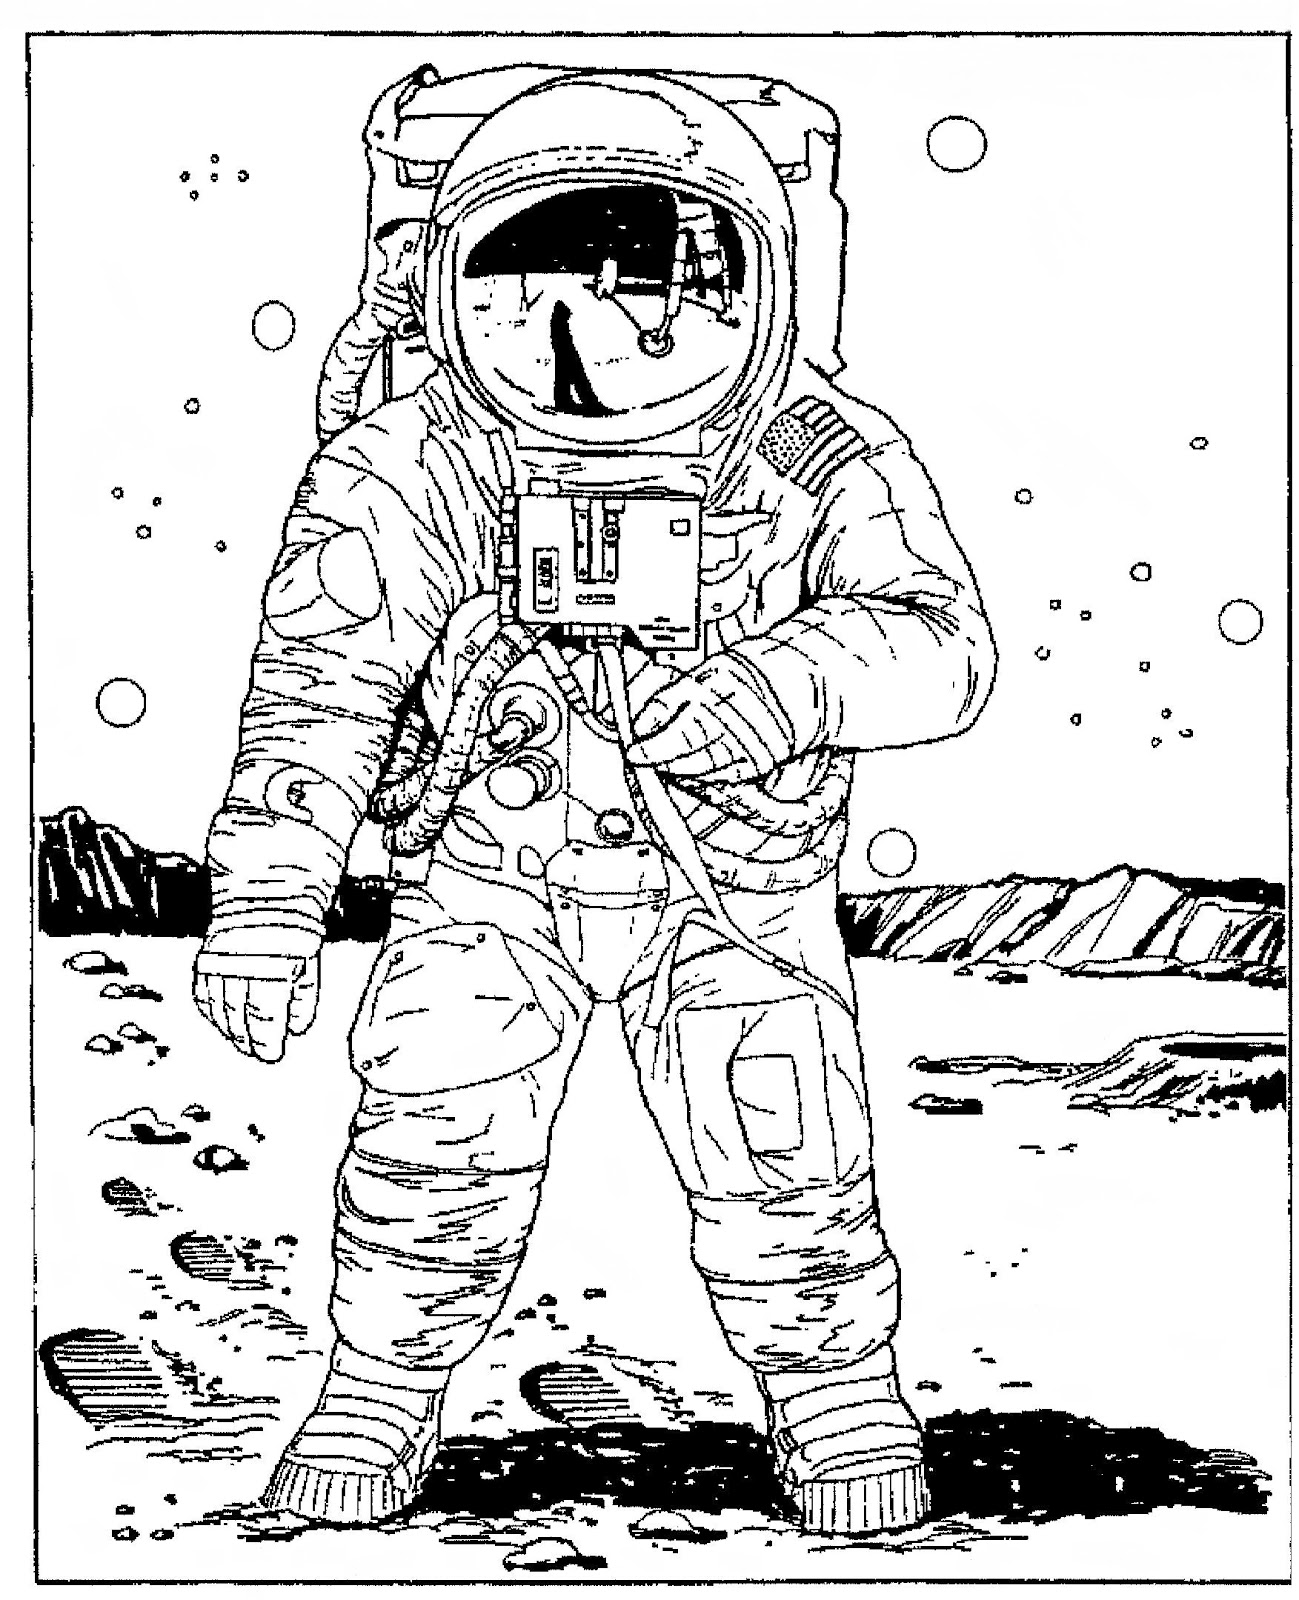 nasa astronaut coloring pages mostly paper dolls september 2012 pages astronaut nasa coloring